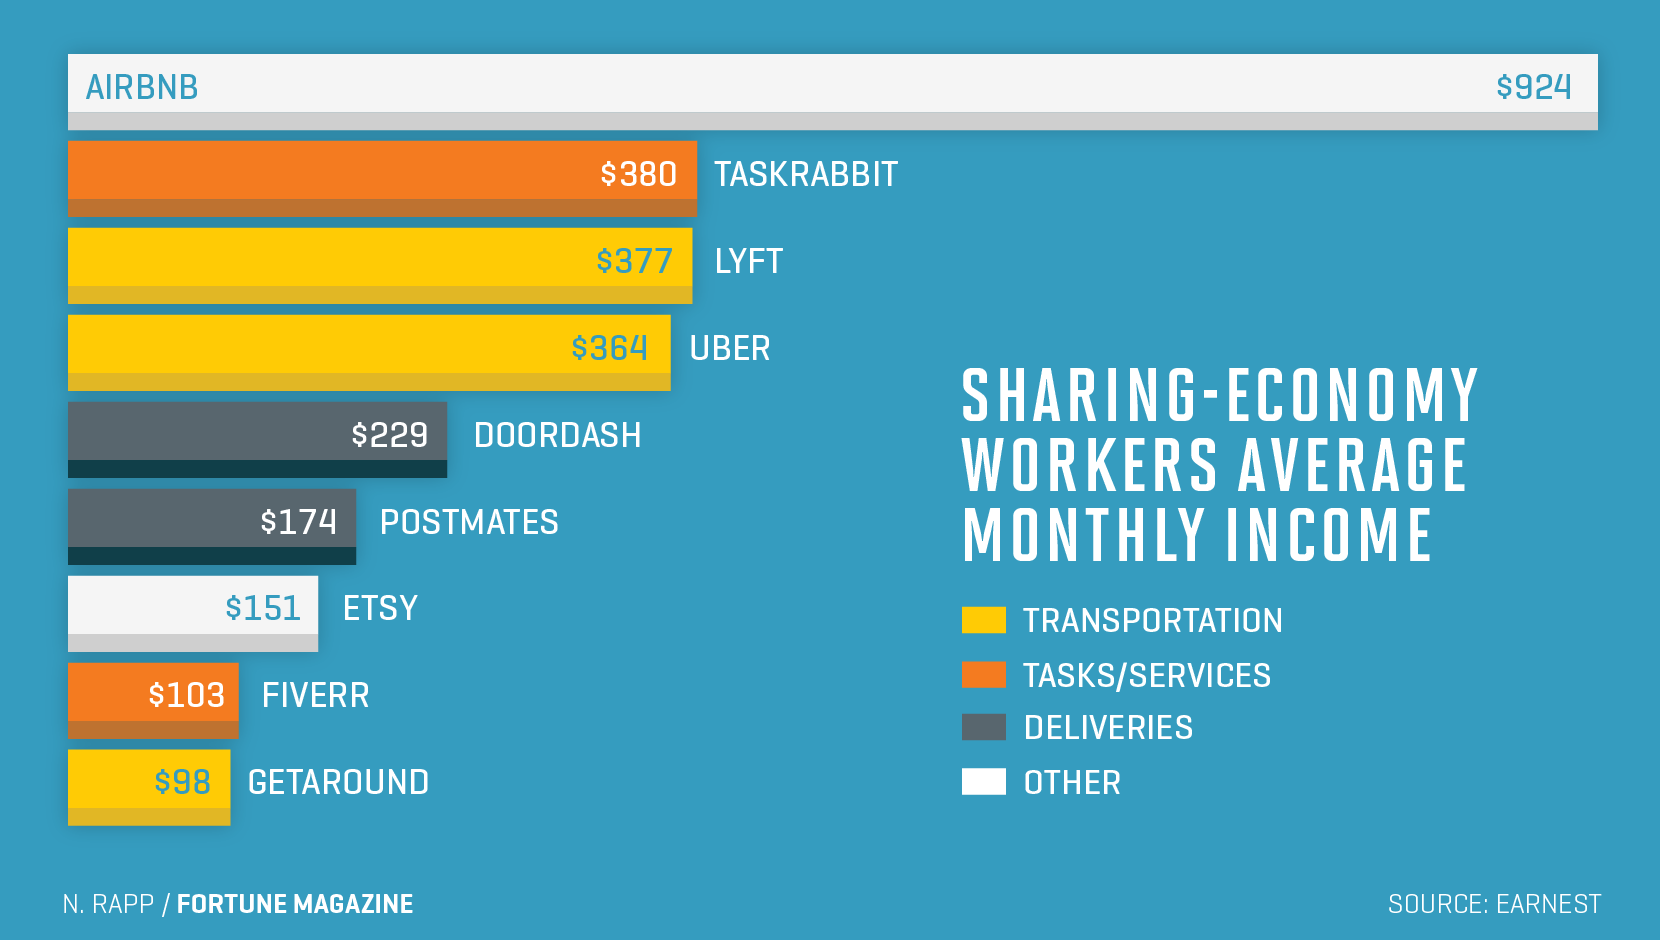 Chart shows average monthly income for sharing-economy workers